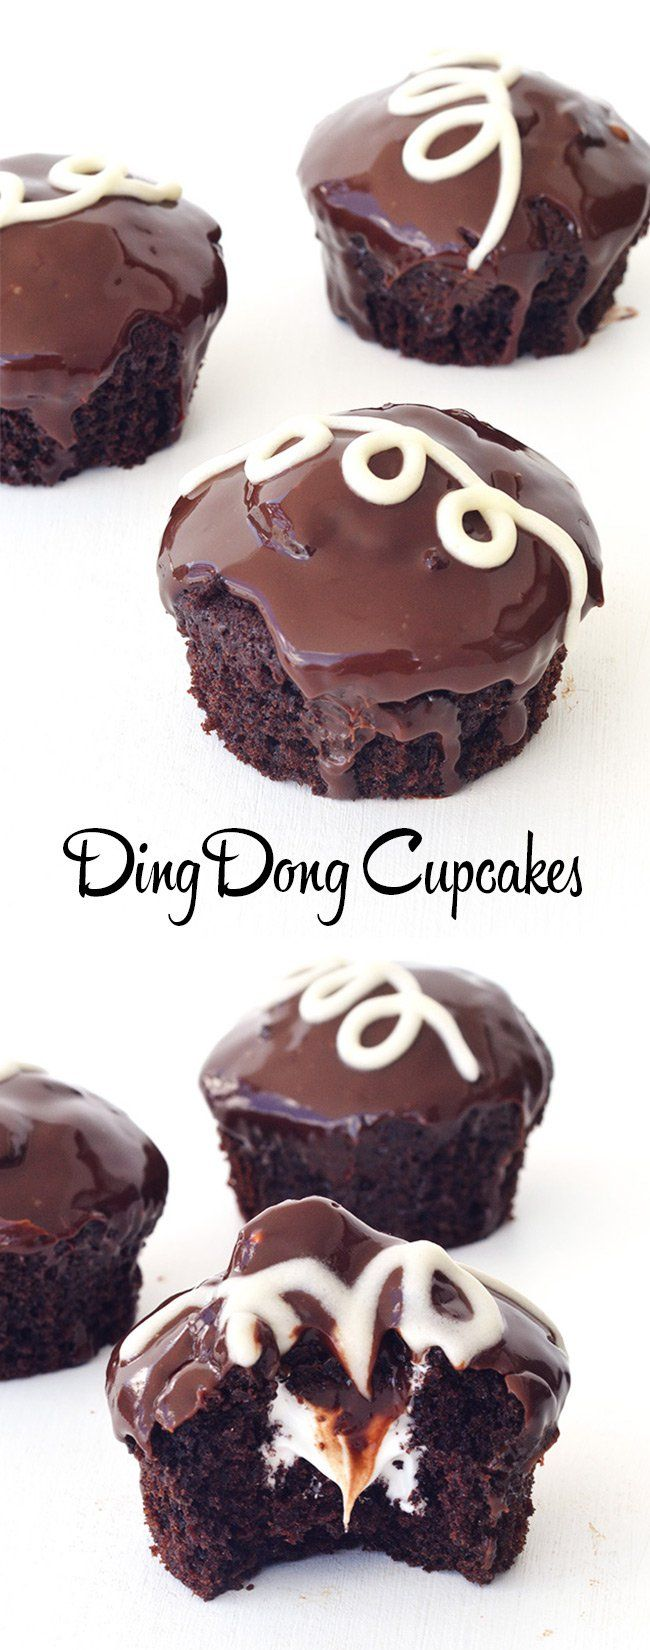 You are going to love these homemade Ding Dong Cupcakes!